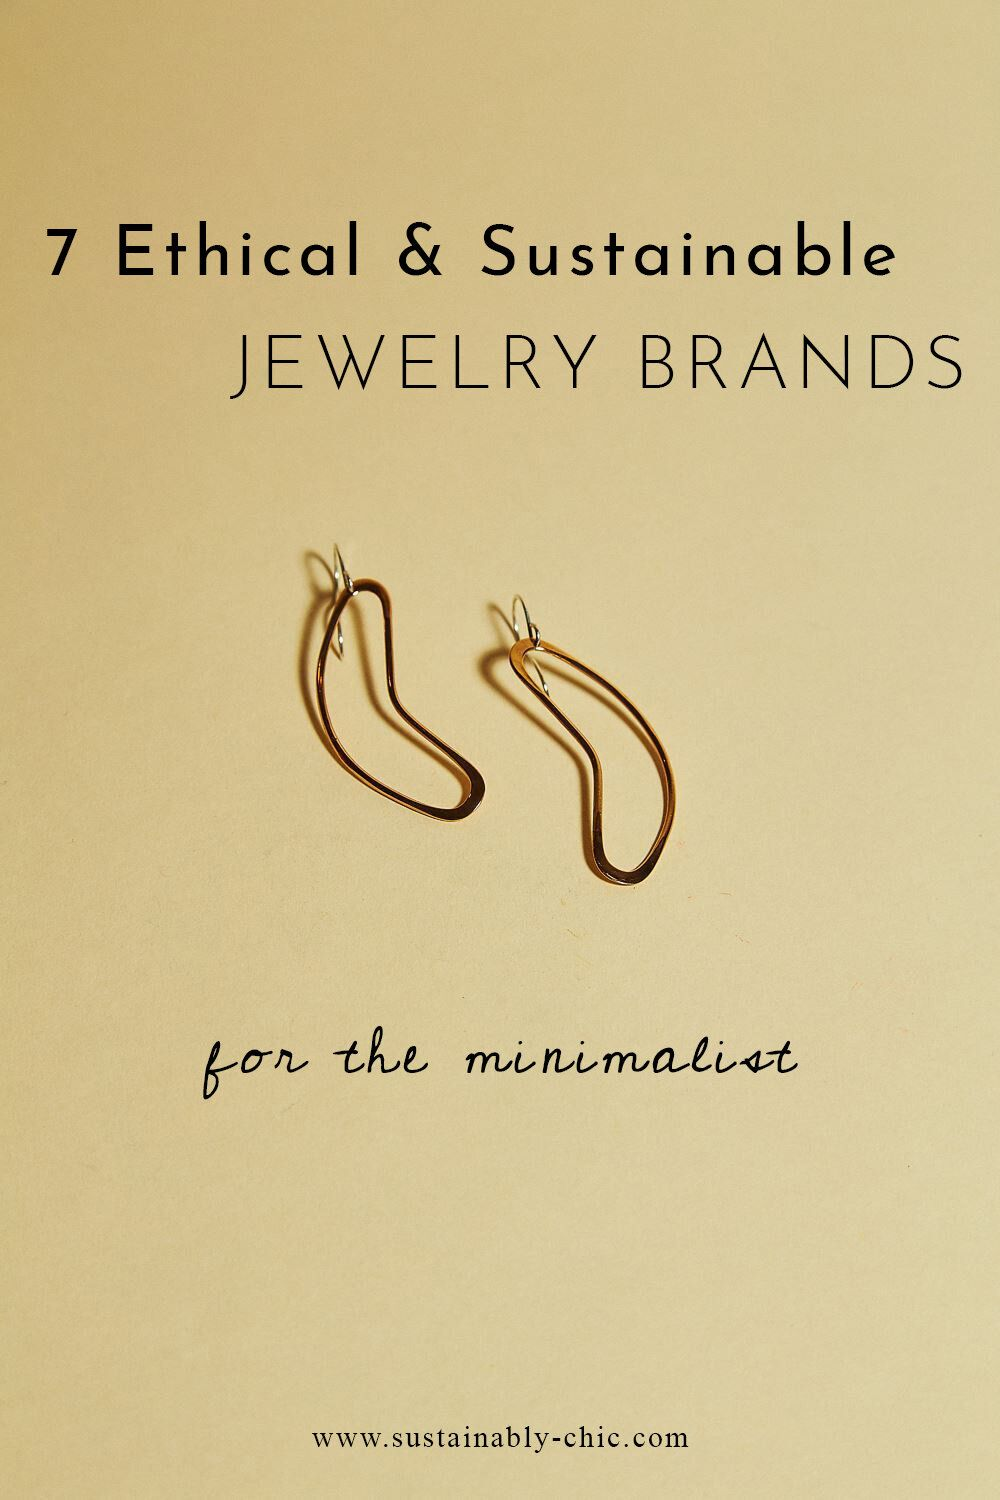 7 Ethical & Sustainable Jewelry Brands for the Minimalist